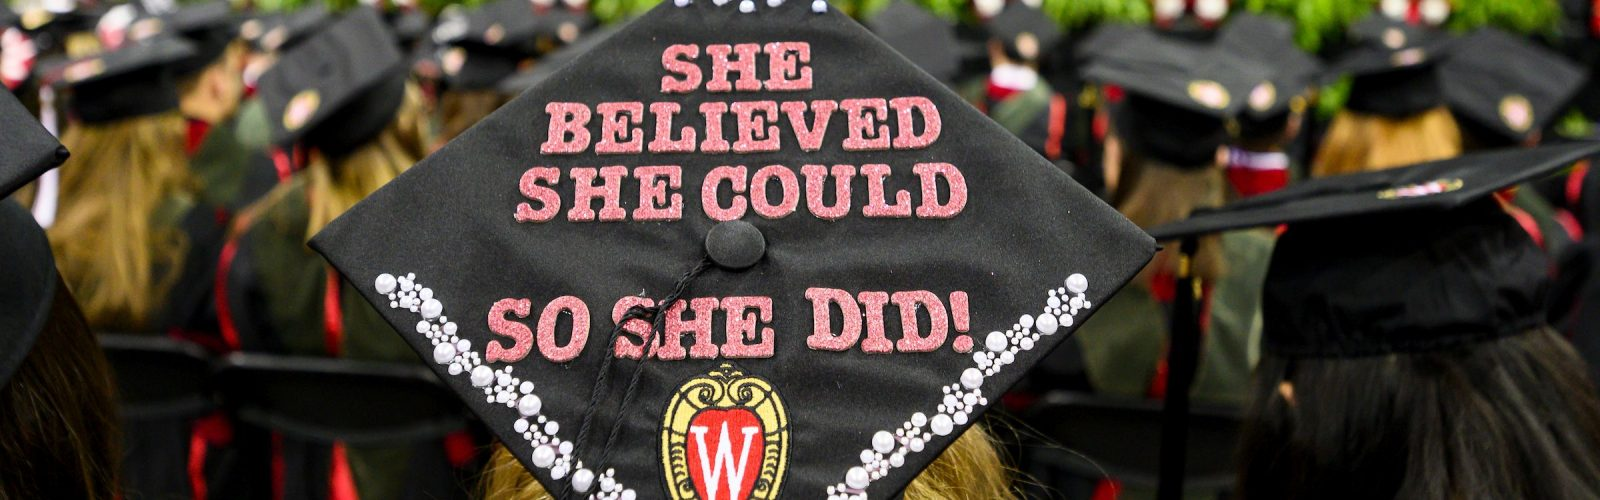 """She believed she could so she did!"" on graduation cap"